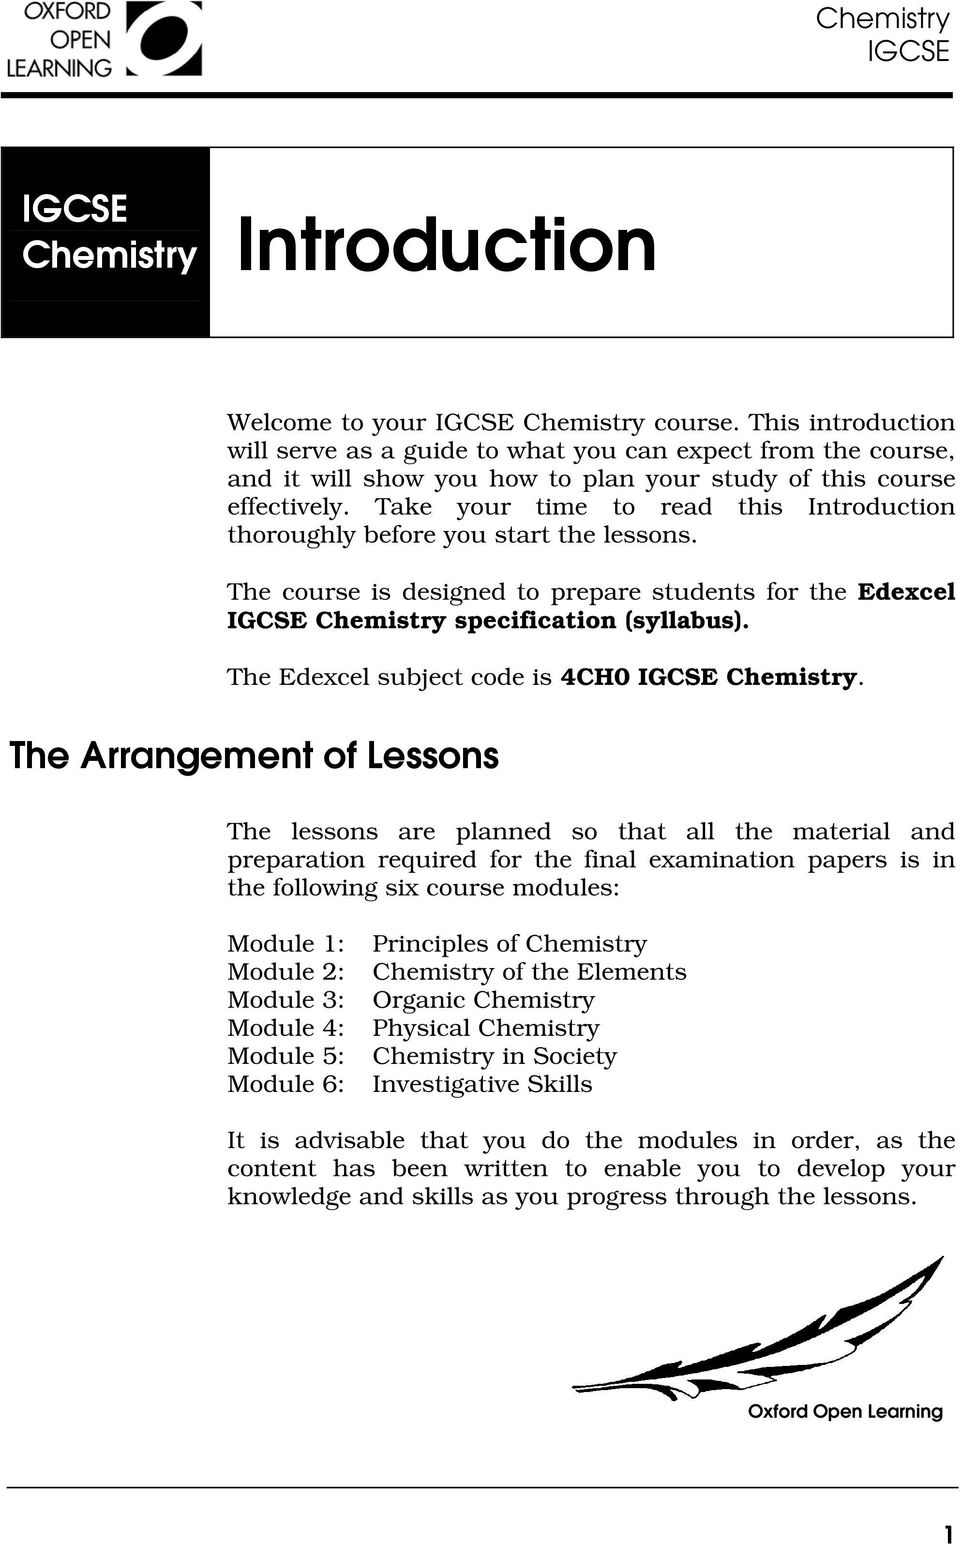 OXFORD OPEN  Introduction IGCSE  Chemistry  Introduction - PDF